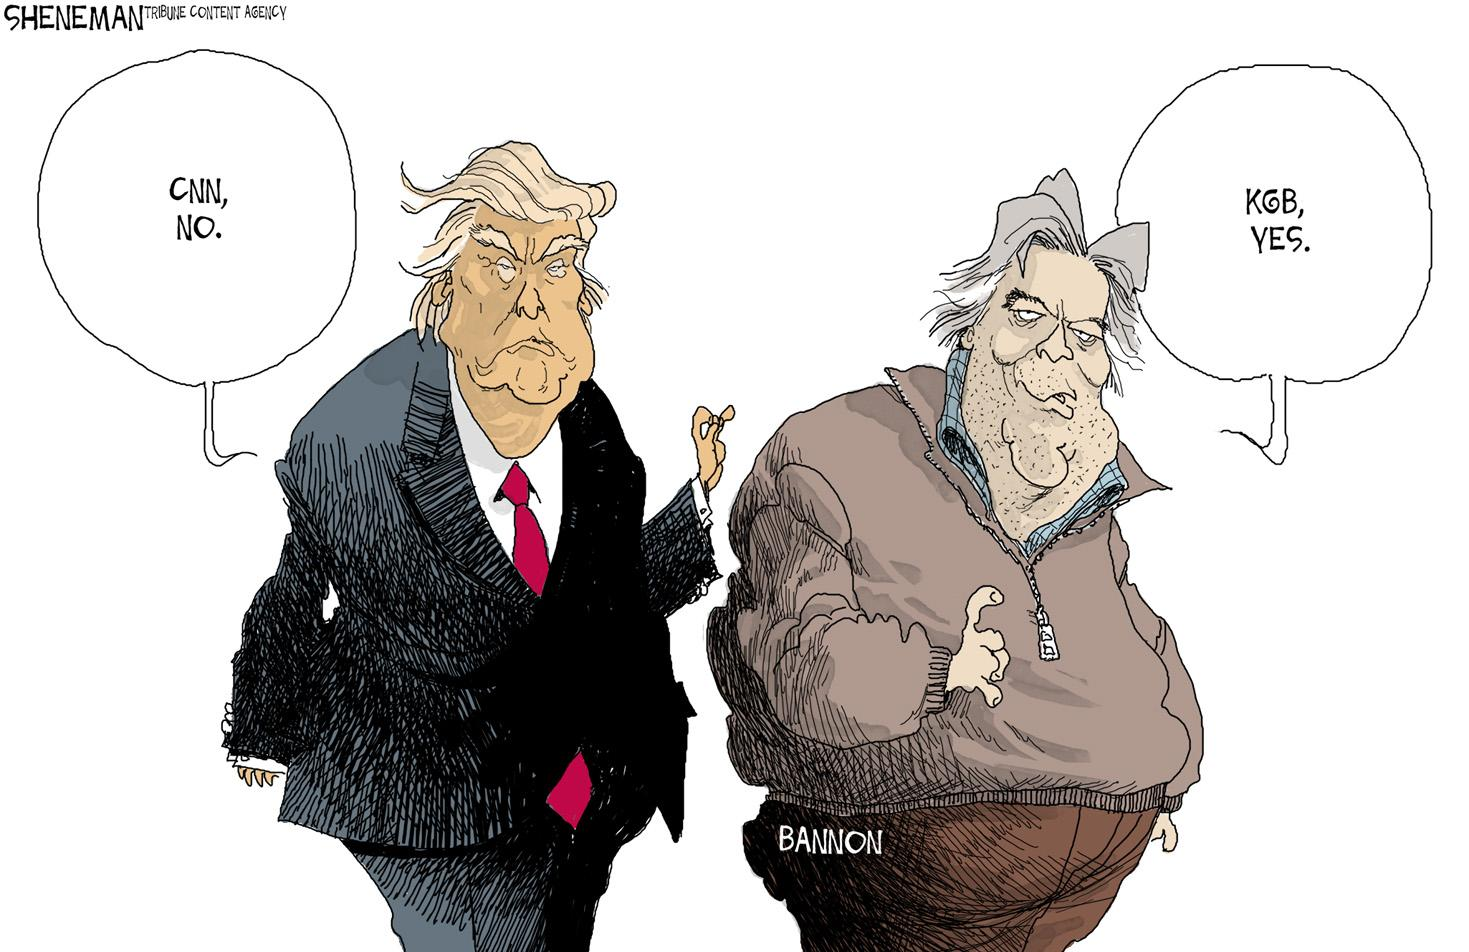 This political cartoon features President Trump (left) and Trump's Chief of Strategist Steve Bannon  (right). Trump has called CNN